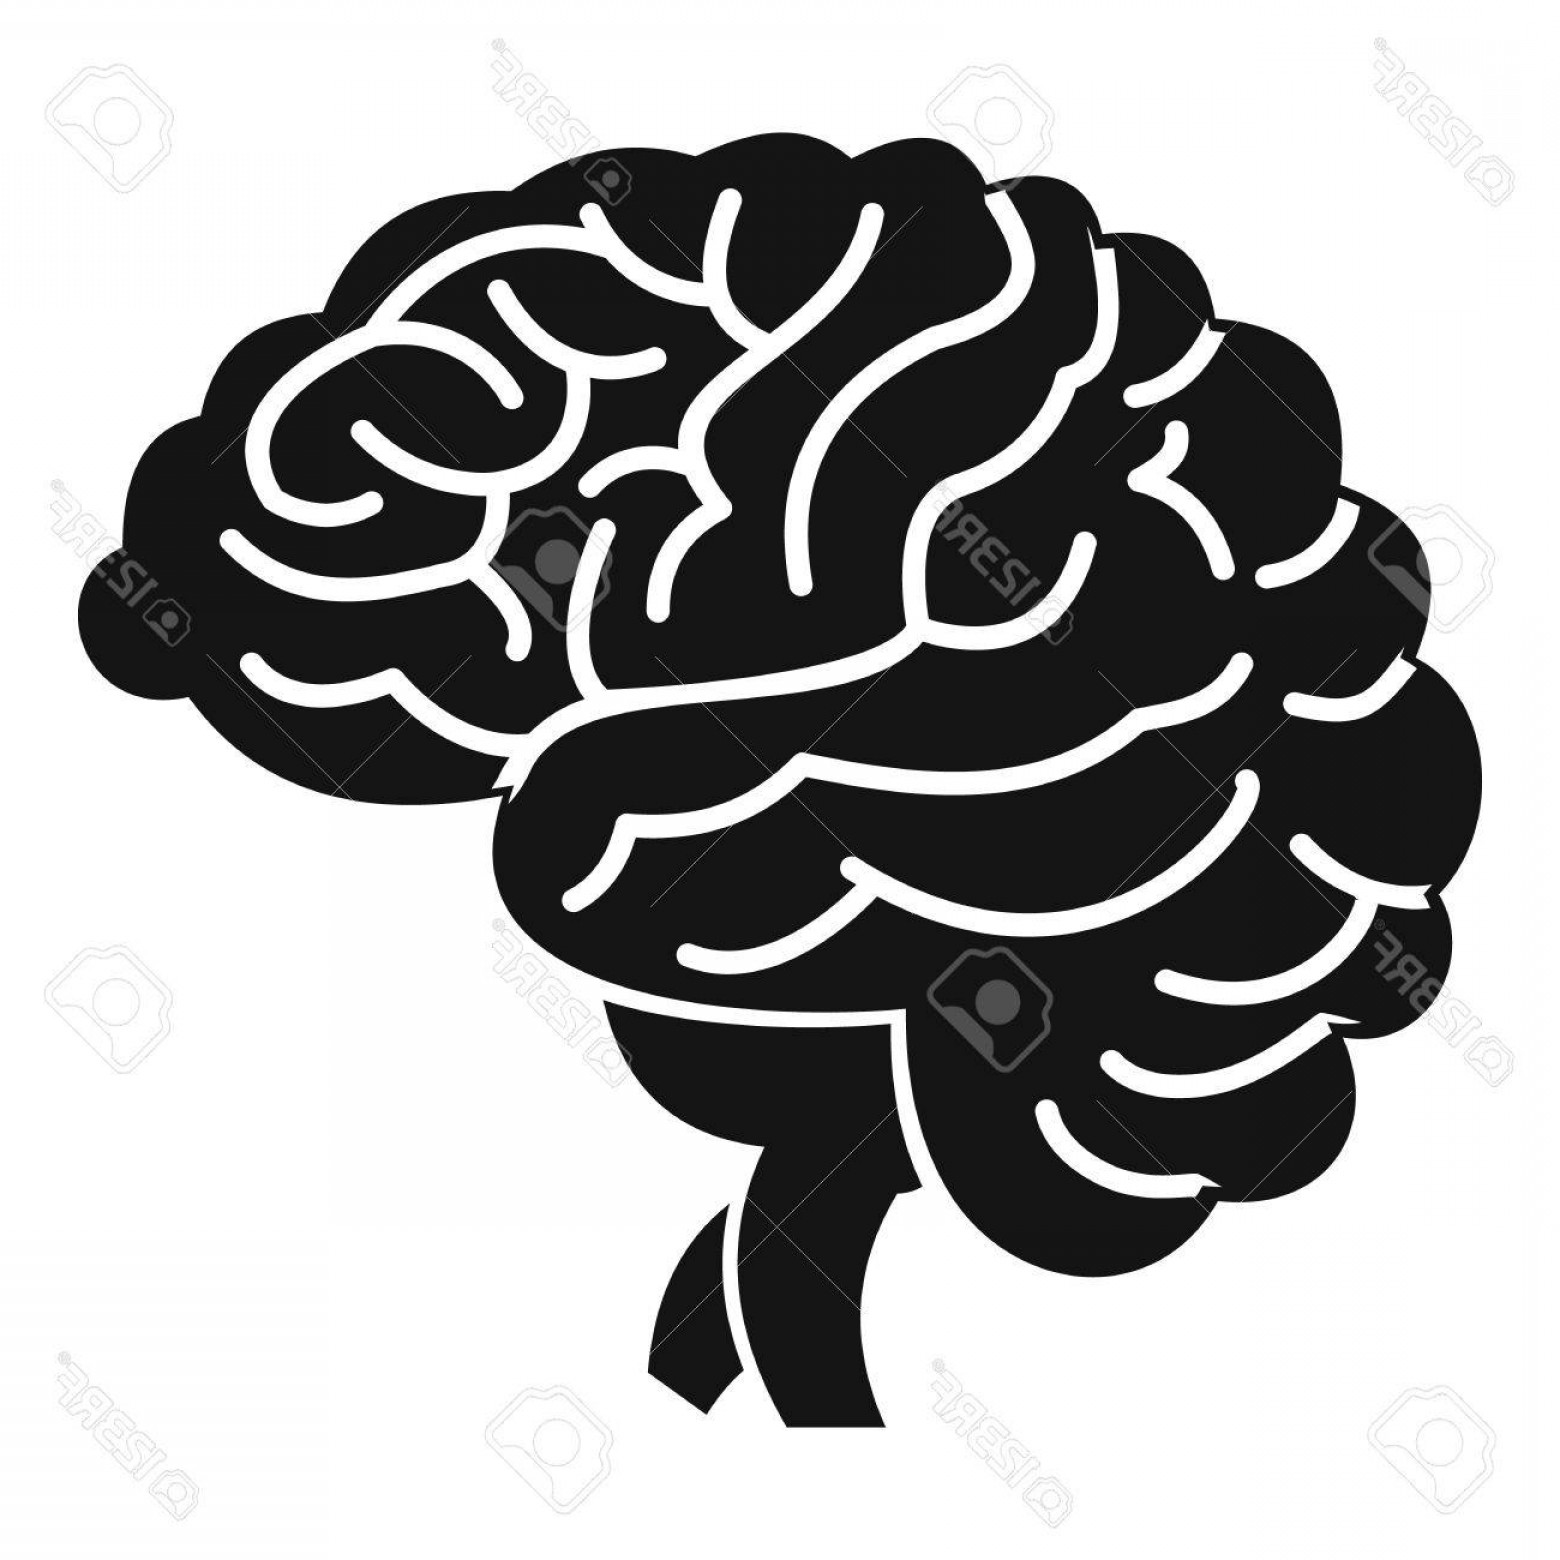 Brain Vector Art: Photostock Vector Brain Icon Simple Illustration Of Brain Vector Icon For Web